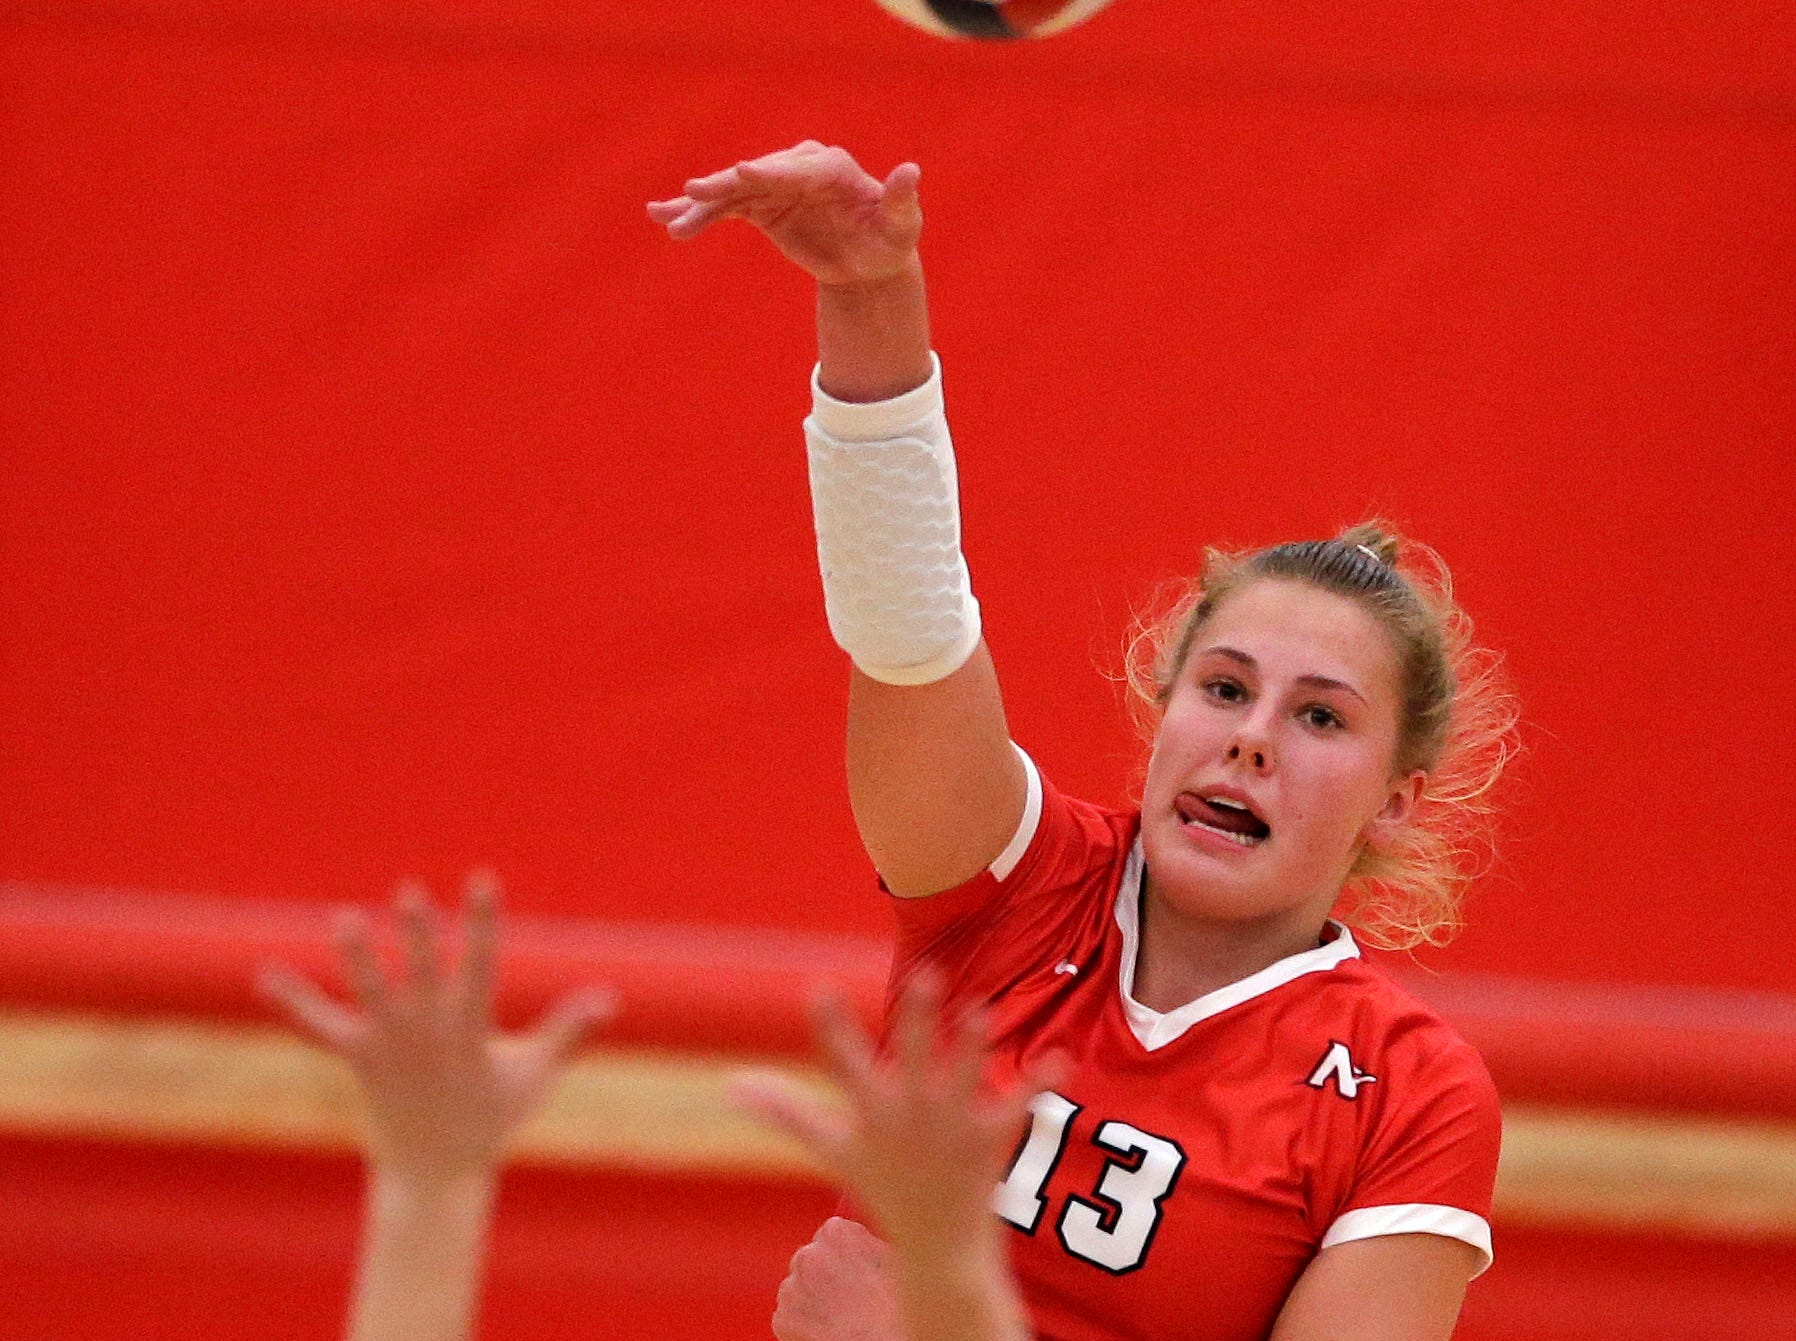 Kiersten Kraus of Neenah hits against Kimberly in FVA girls volleyball Tuesday, September 11, 2018, at Kimberly High School in Kimberly, Wis.Ron Page/USA TODAY NETWORK-Wisconsin